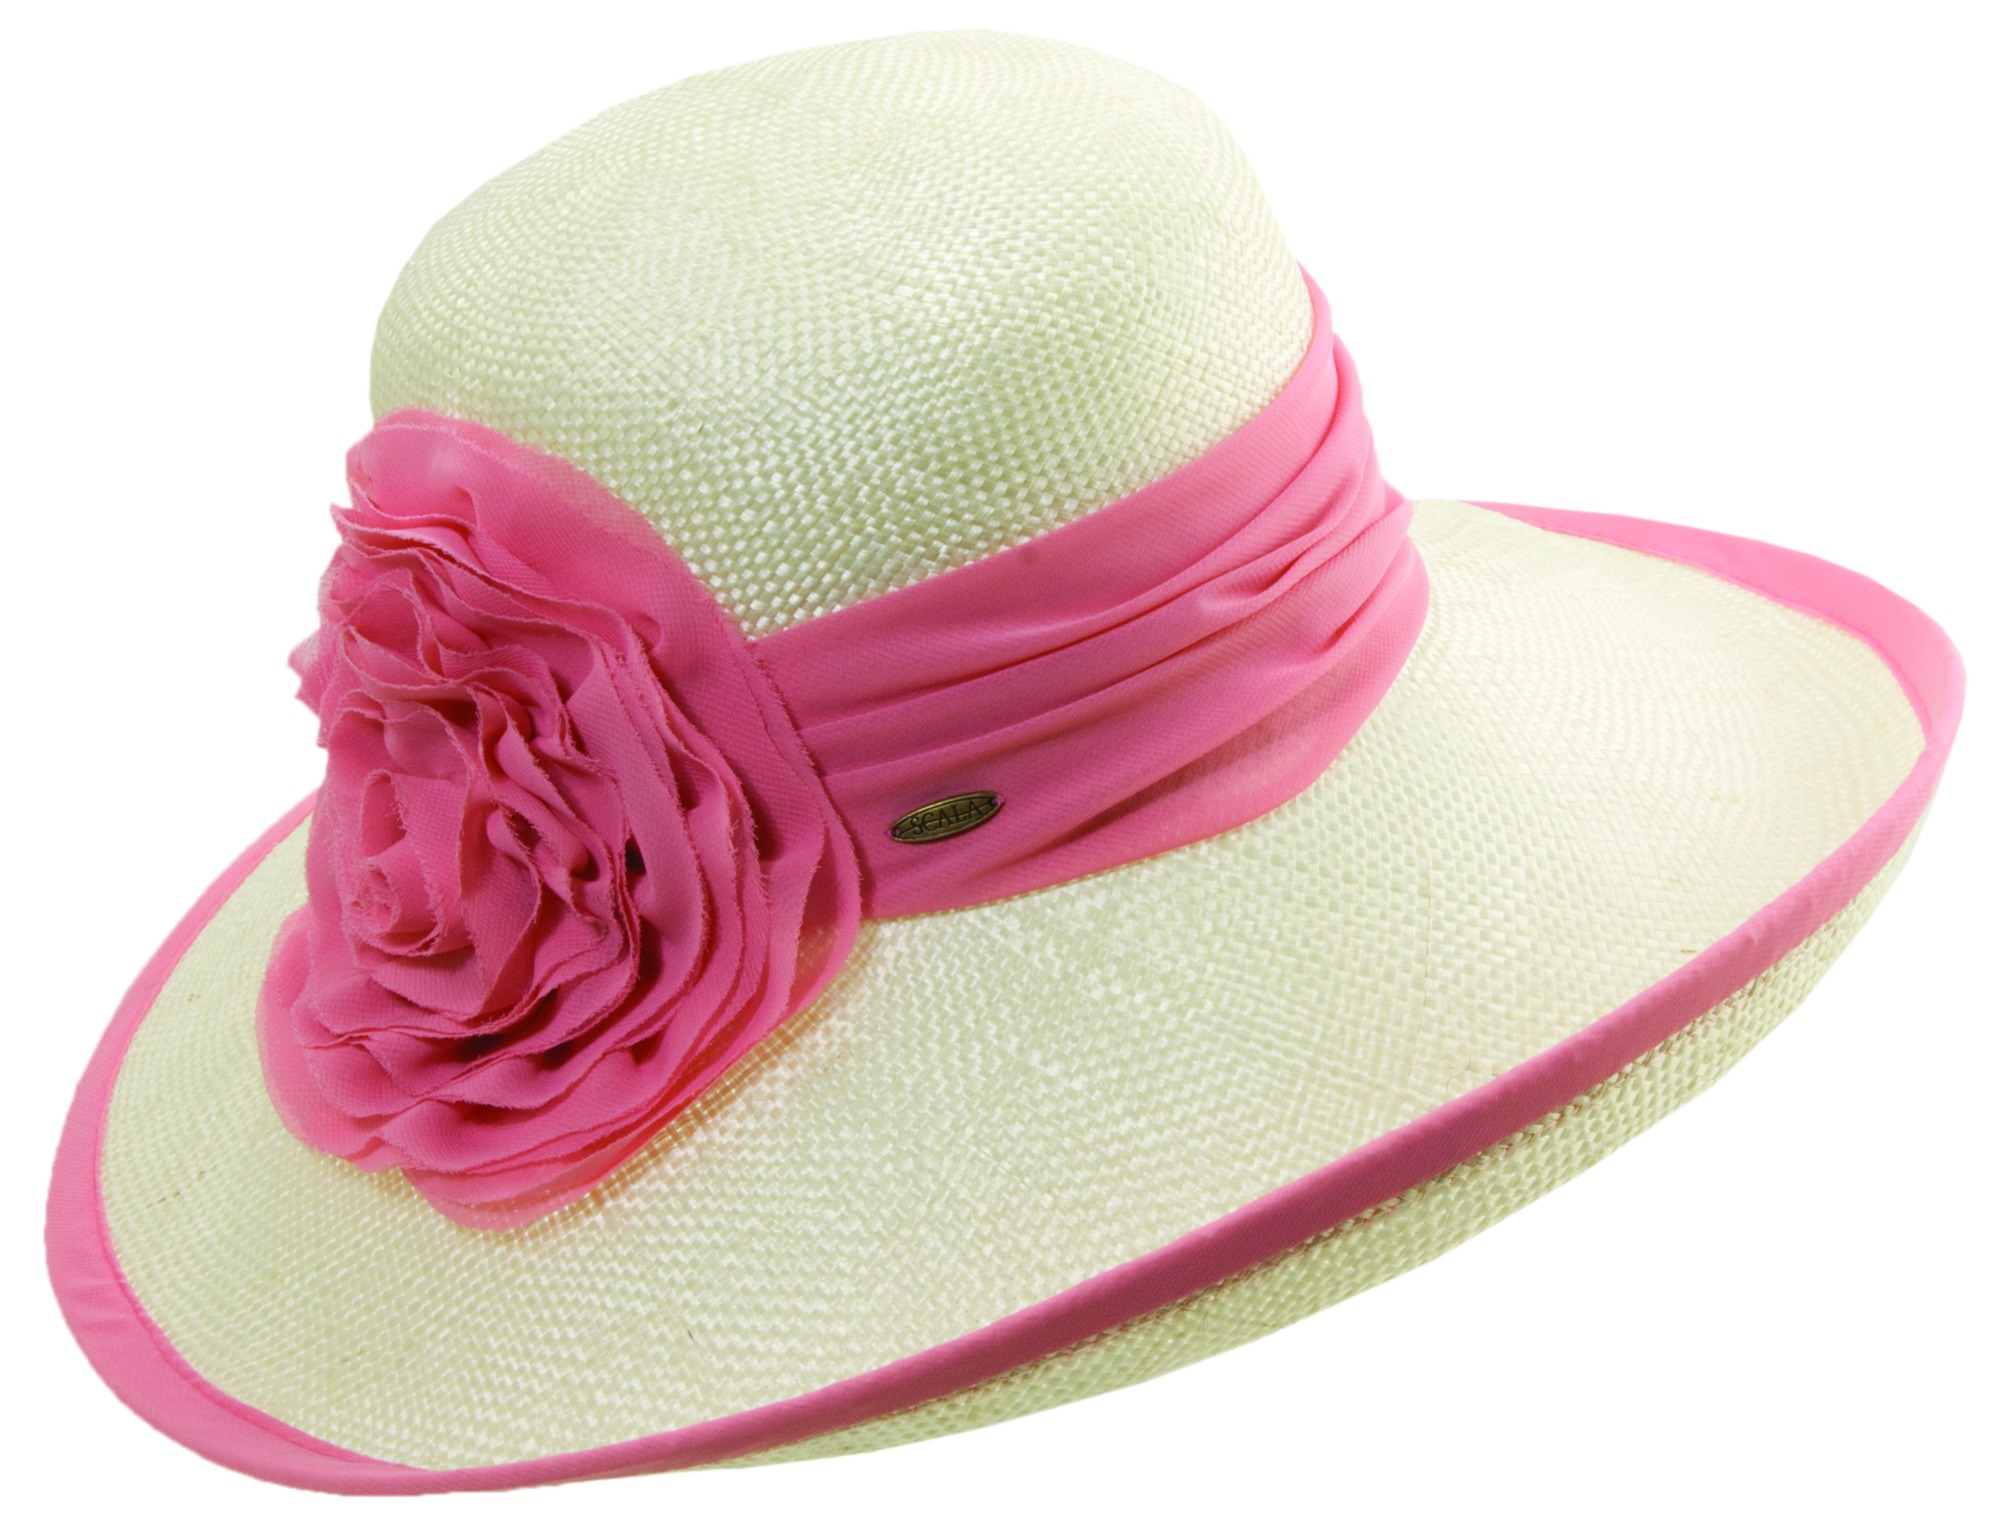 Shop for and buy ladies hats online at Macy's. Find ladies hats at Macy's.